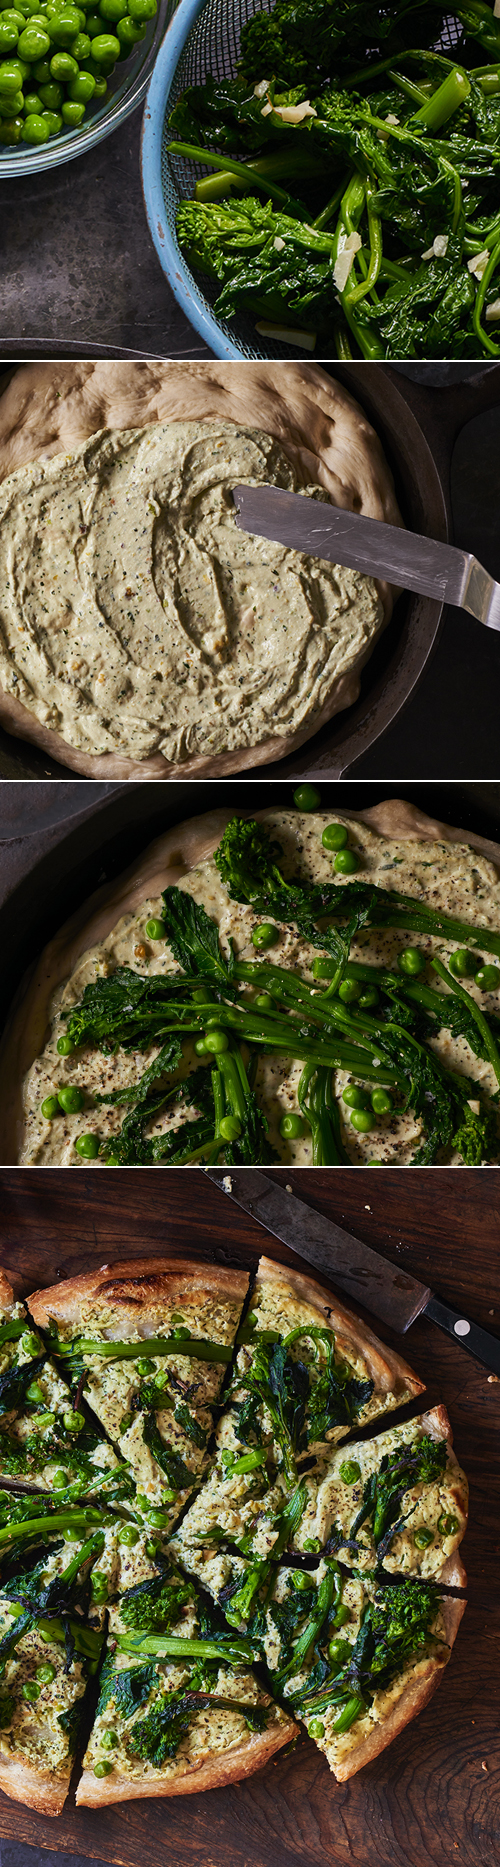 ab_pinterest_processpin_greenpizza